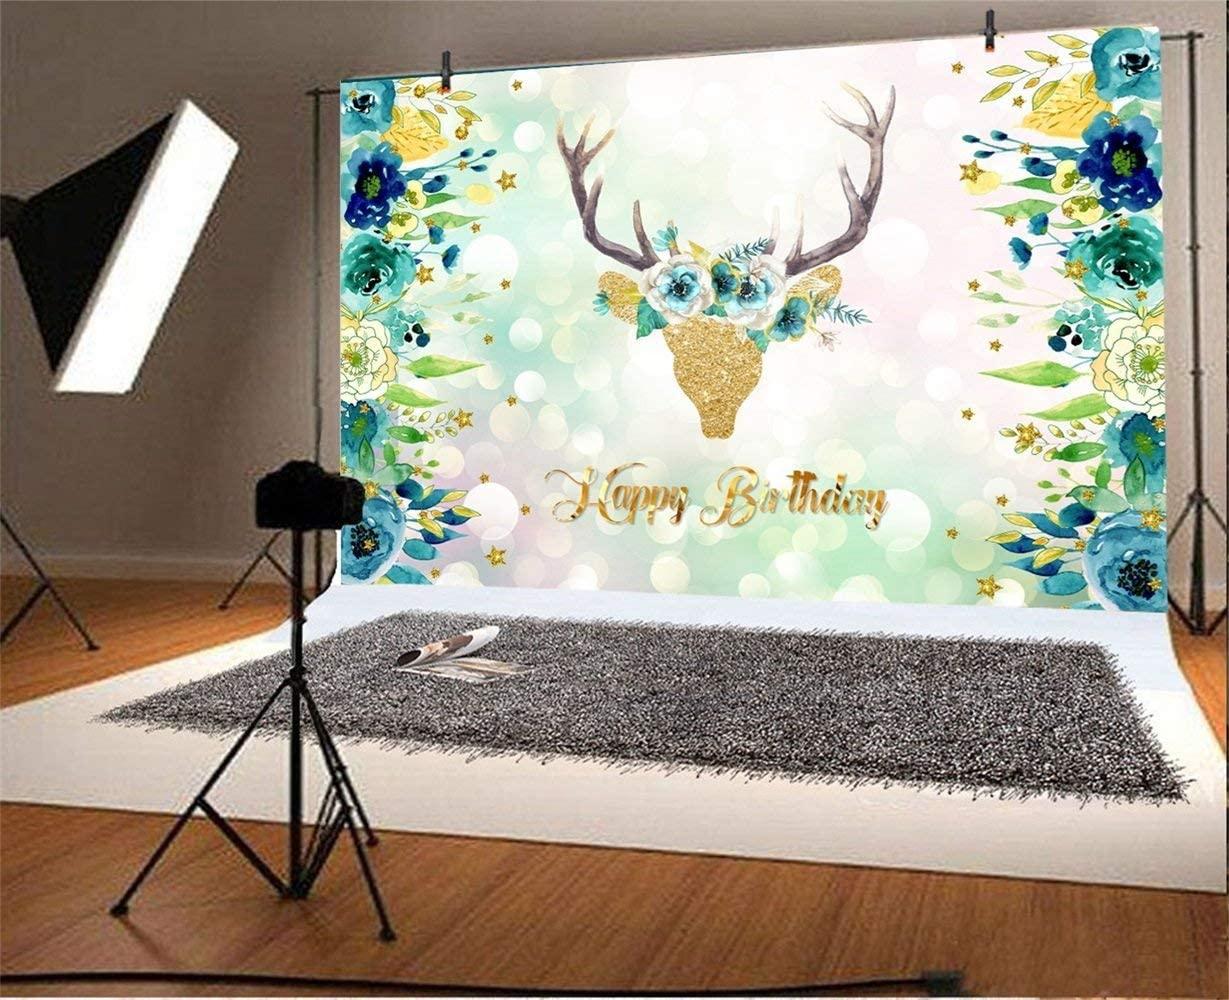 Happy Birthday Backdrop 10x6.5ft Polyester Golden Glitter Floral Deer Head Dreamlike Bokeh Haloes Photography Background Blue Flower Edges Kids Child Baby Shoot Birthday Party Banner Cake Smash